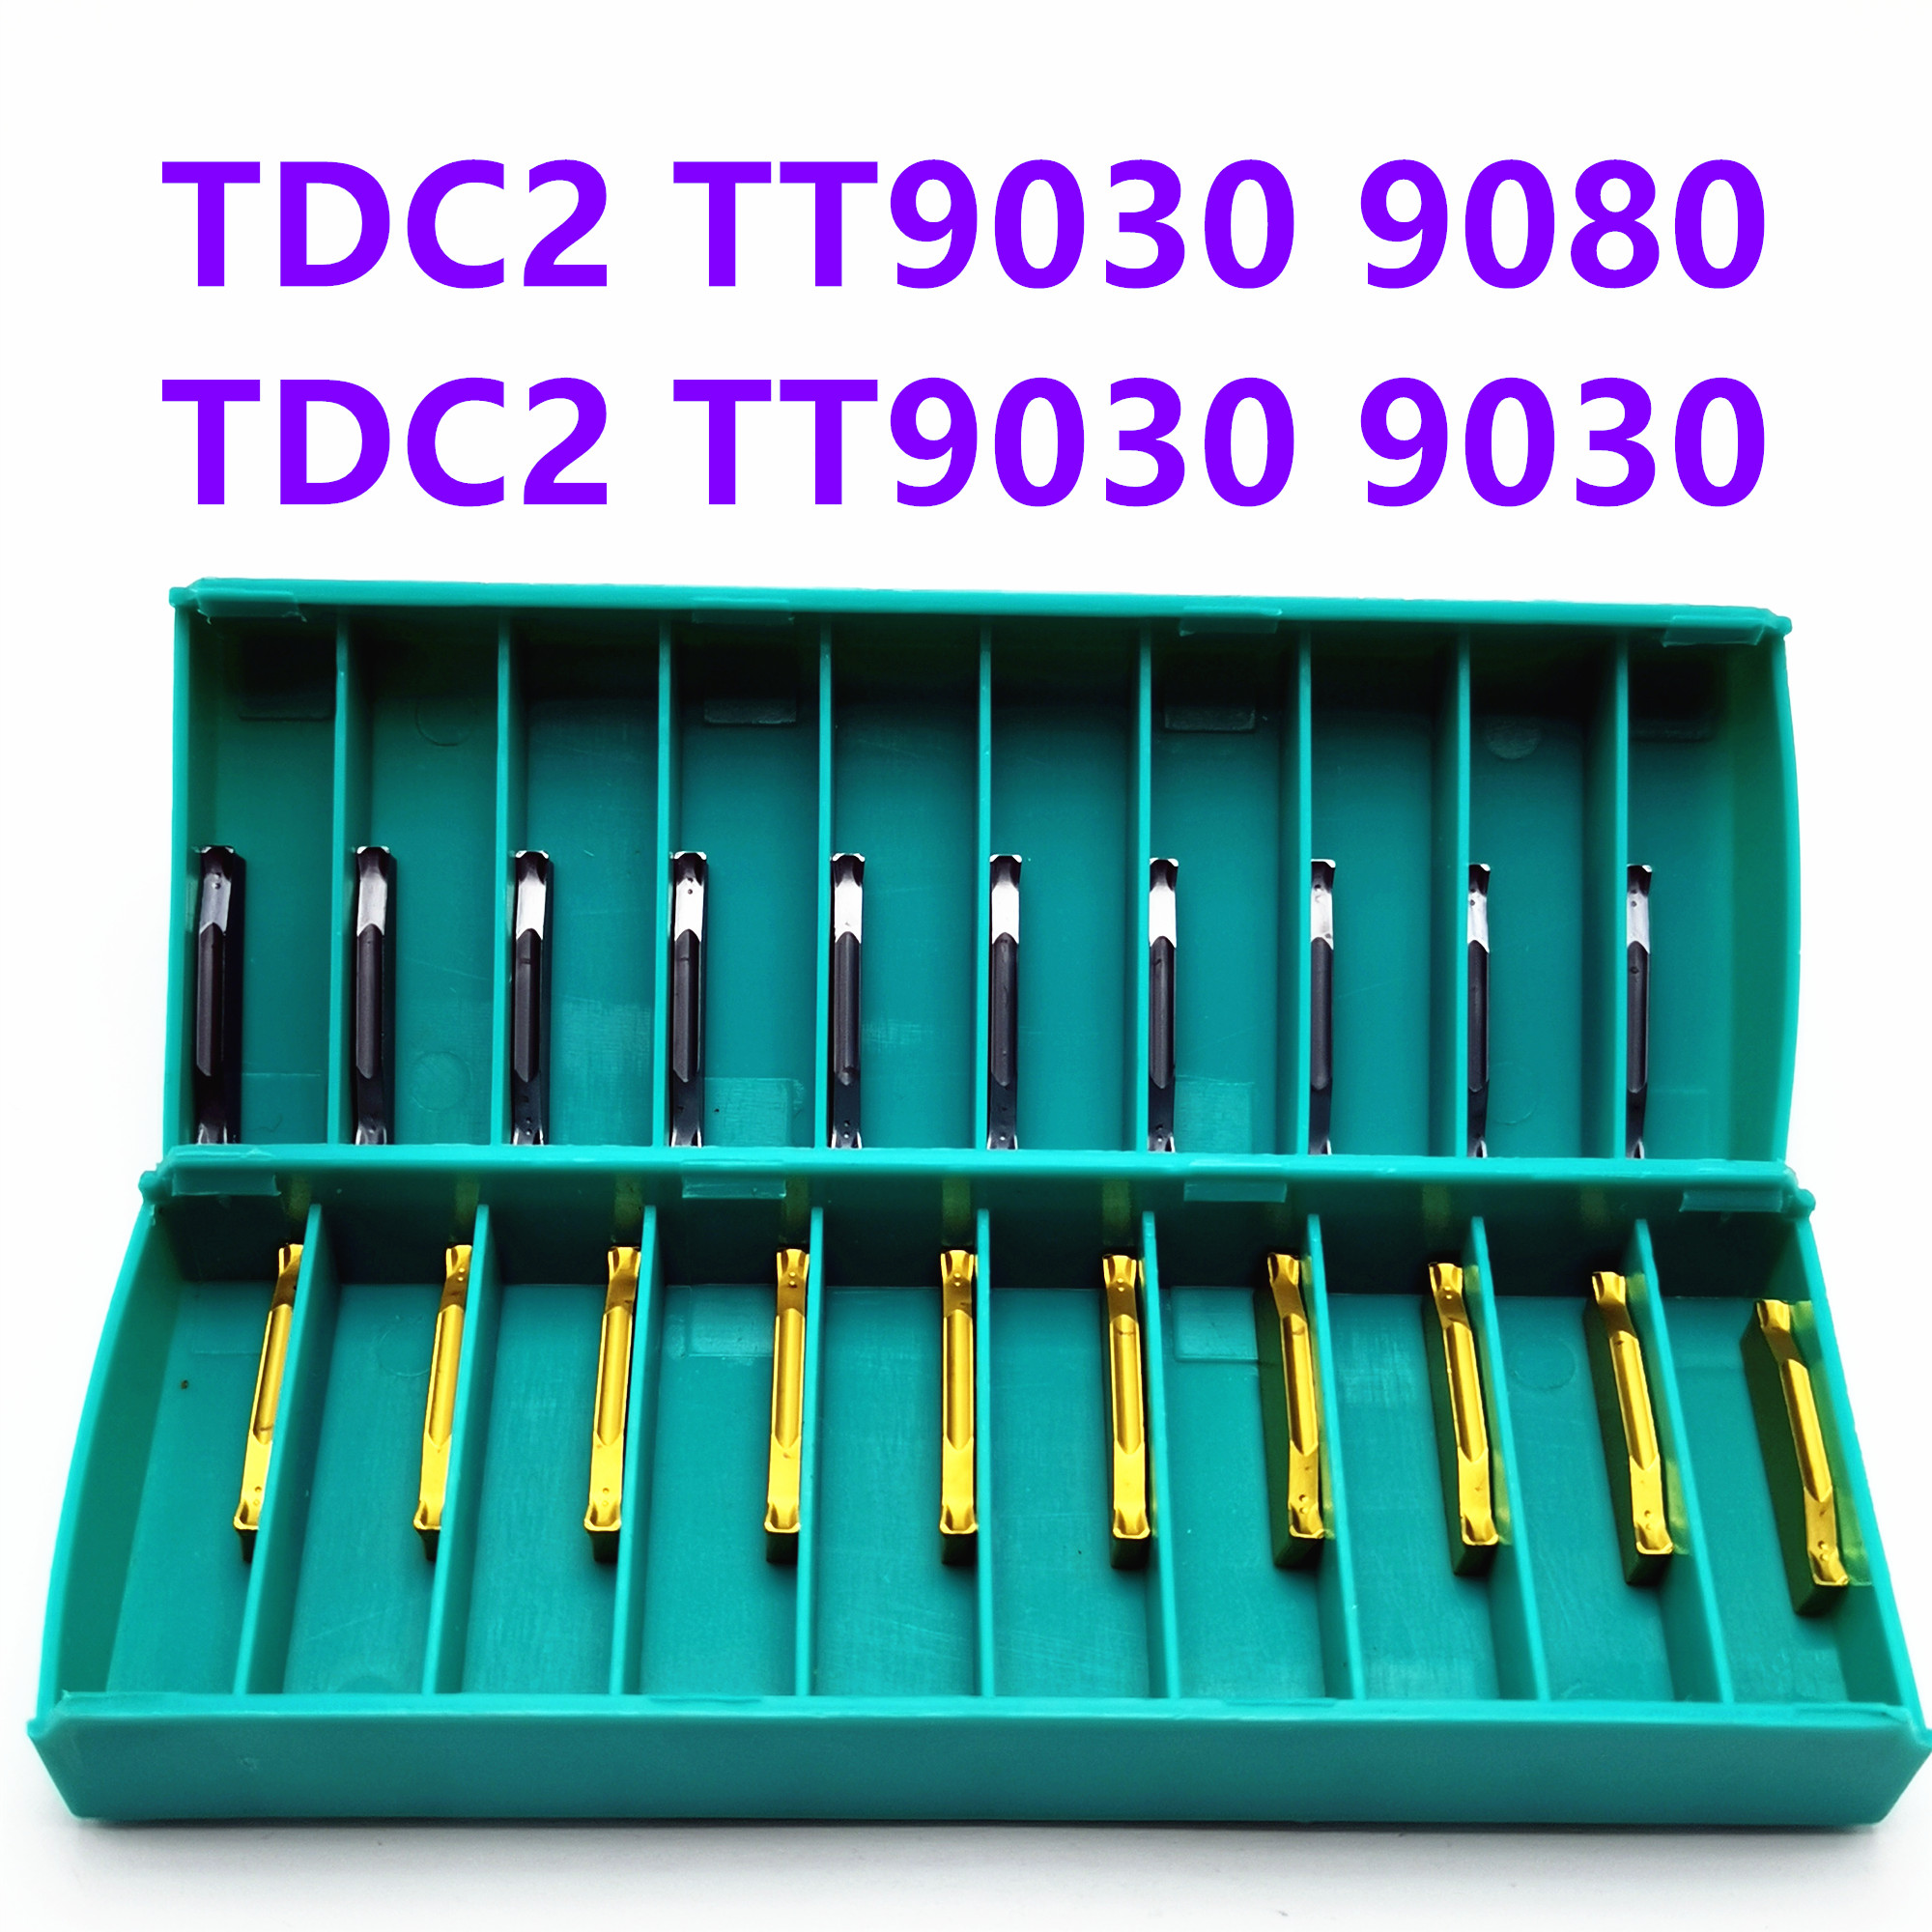 Tungsten Carbide TDC2 TT9030 TT9080 Grooved Carbide Insert TDC Lathe Tool Turning Tool and Grooving Tool